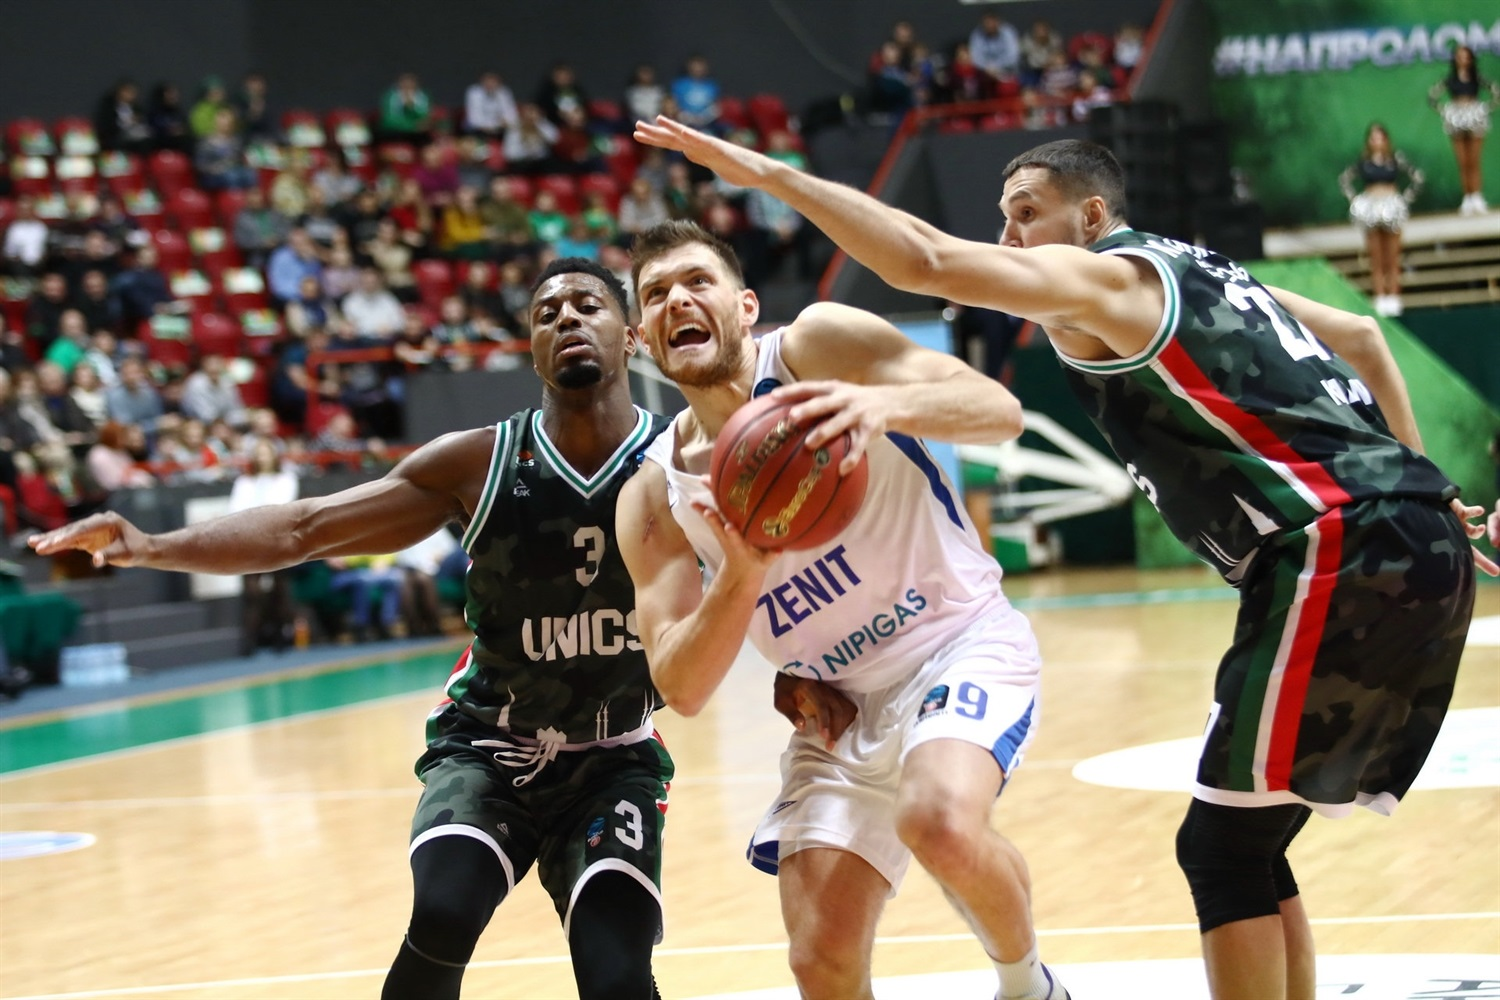 Gal Mekel - Zenit St Petersburg (photo UNICS) - EC18